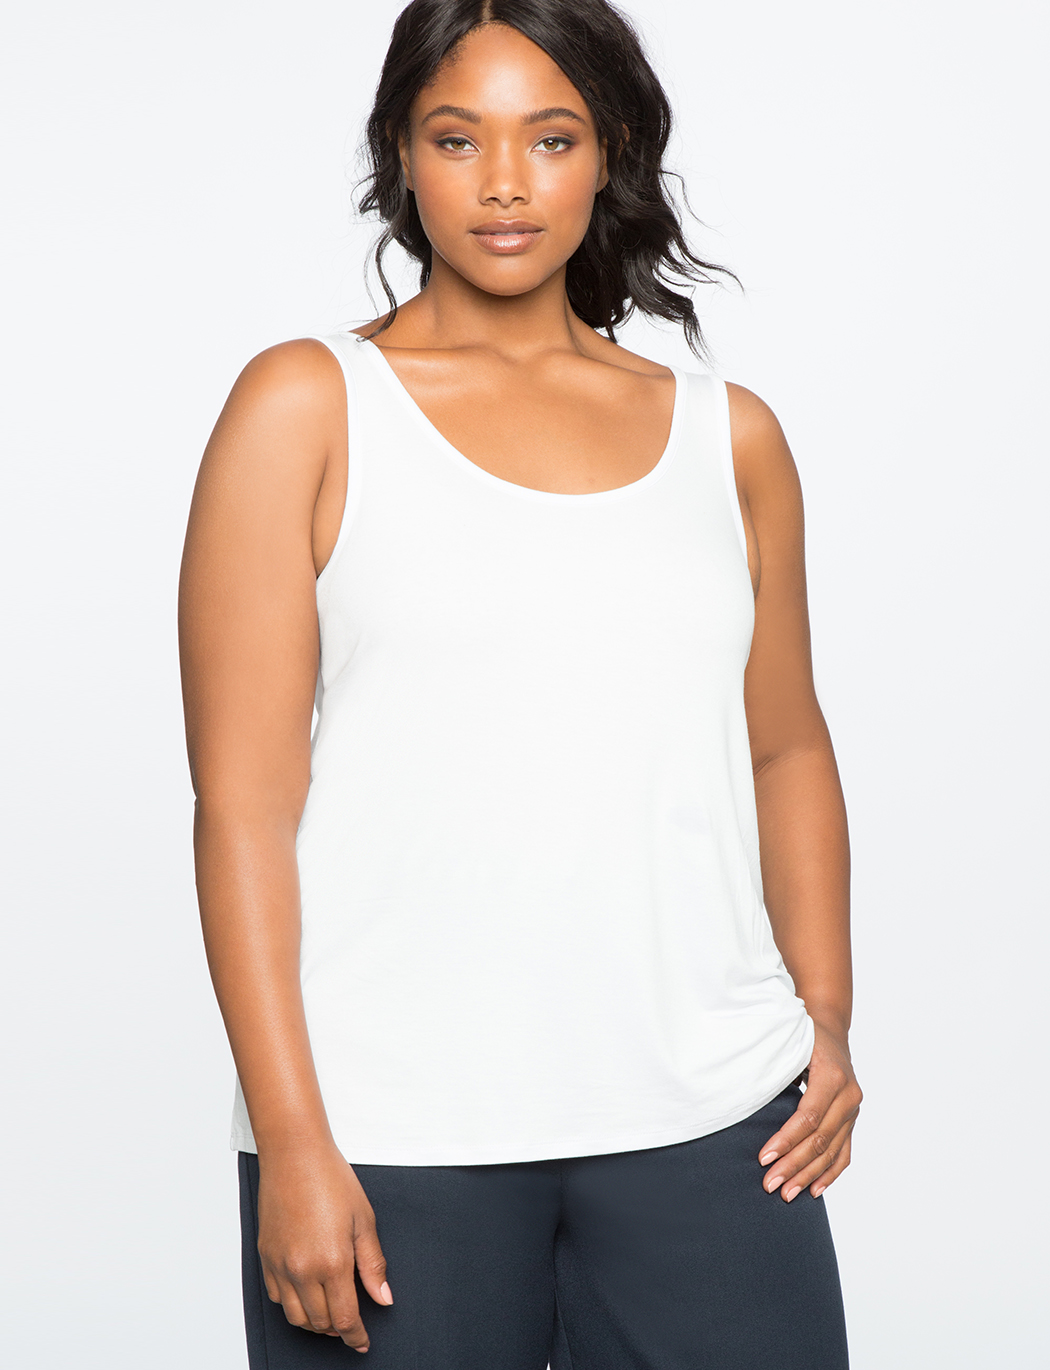 Discover the best Women's Tanks & Camis in Best Sellers. Find the top most popular items in Amazon Best Sellers.